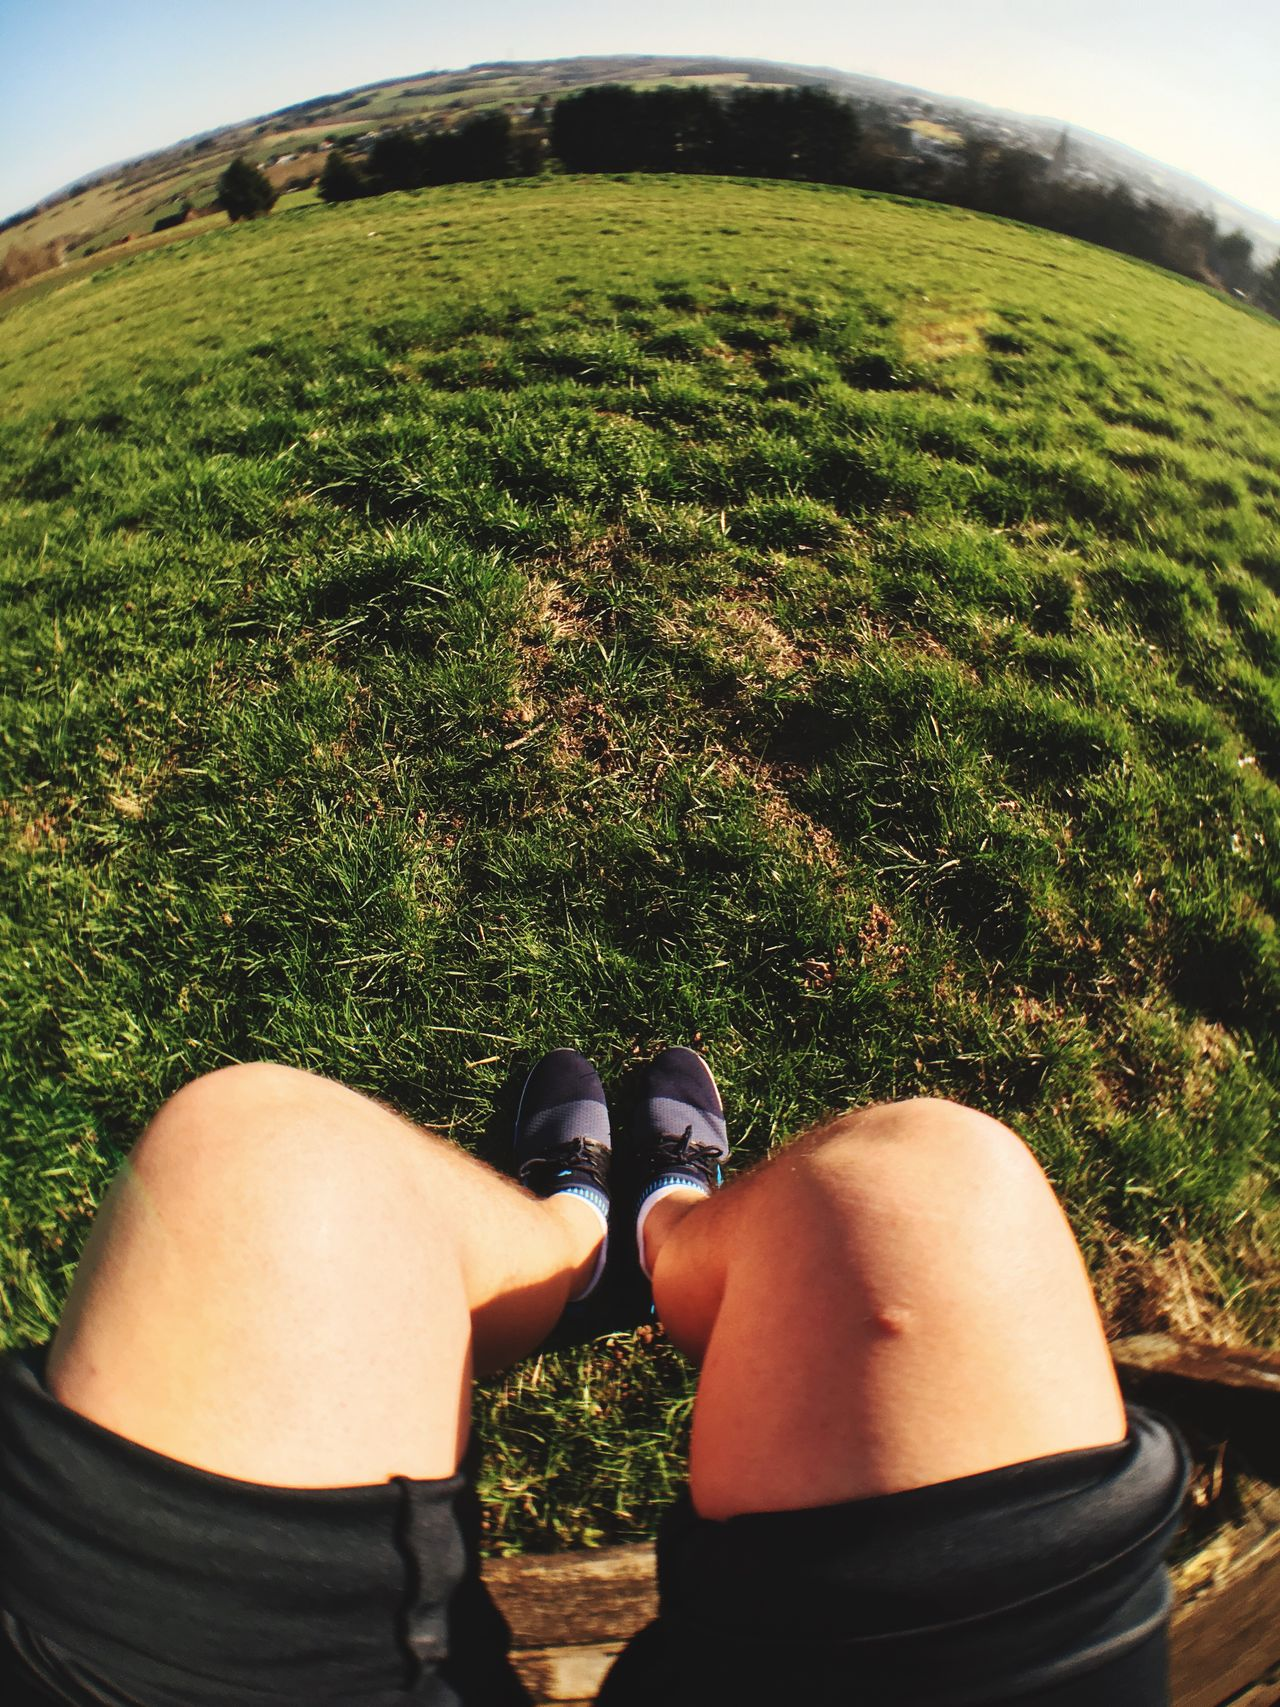 Real People Lifestyles Leisure Activity Grass Green Color Outdoors Men Nature Women Low Section Day One Person Fish-eye Lens Sky Human Leg Sunbathing Sun Legs Leg Fitness Fit Fitness Training Sport Sports Photography Sports